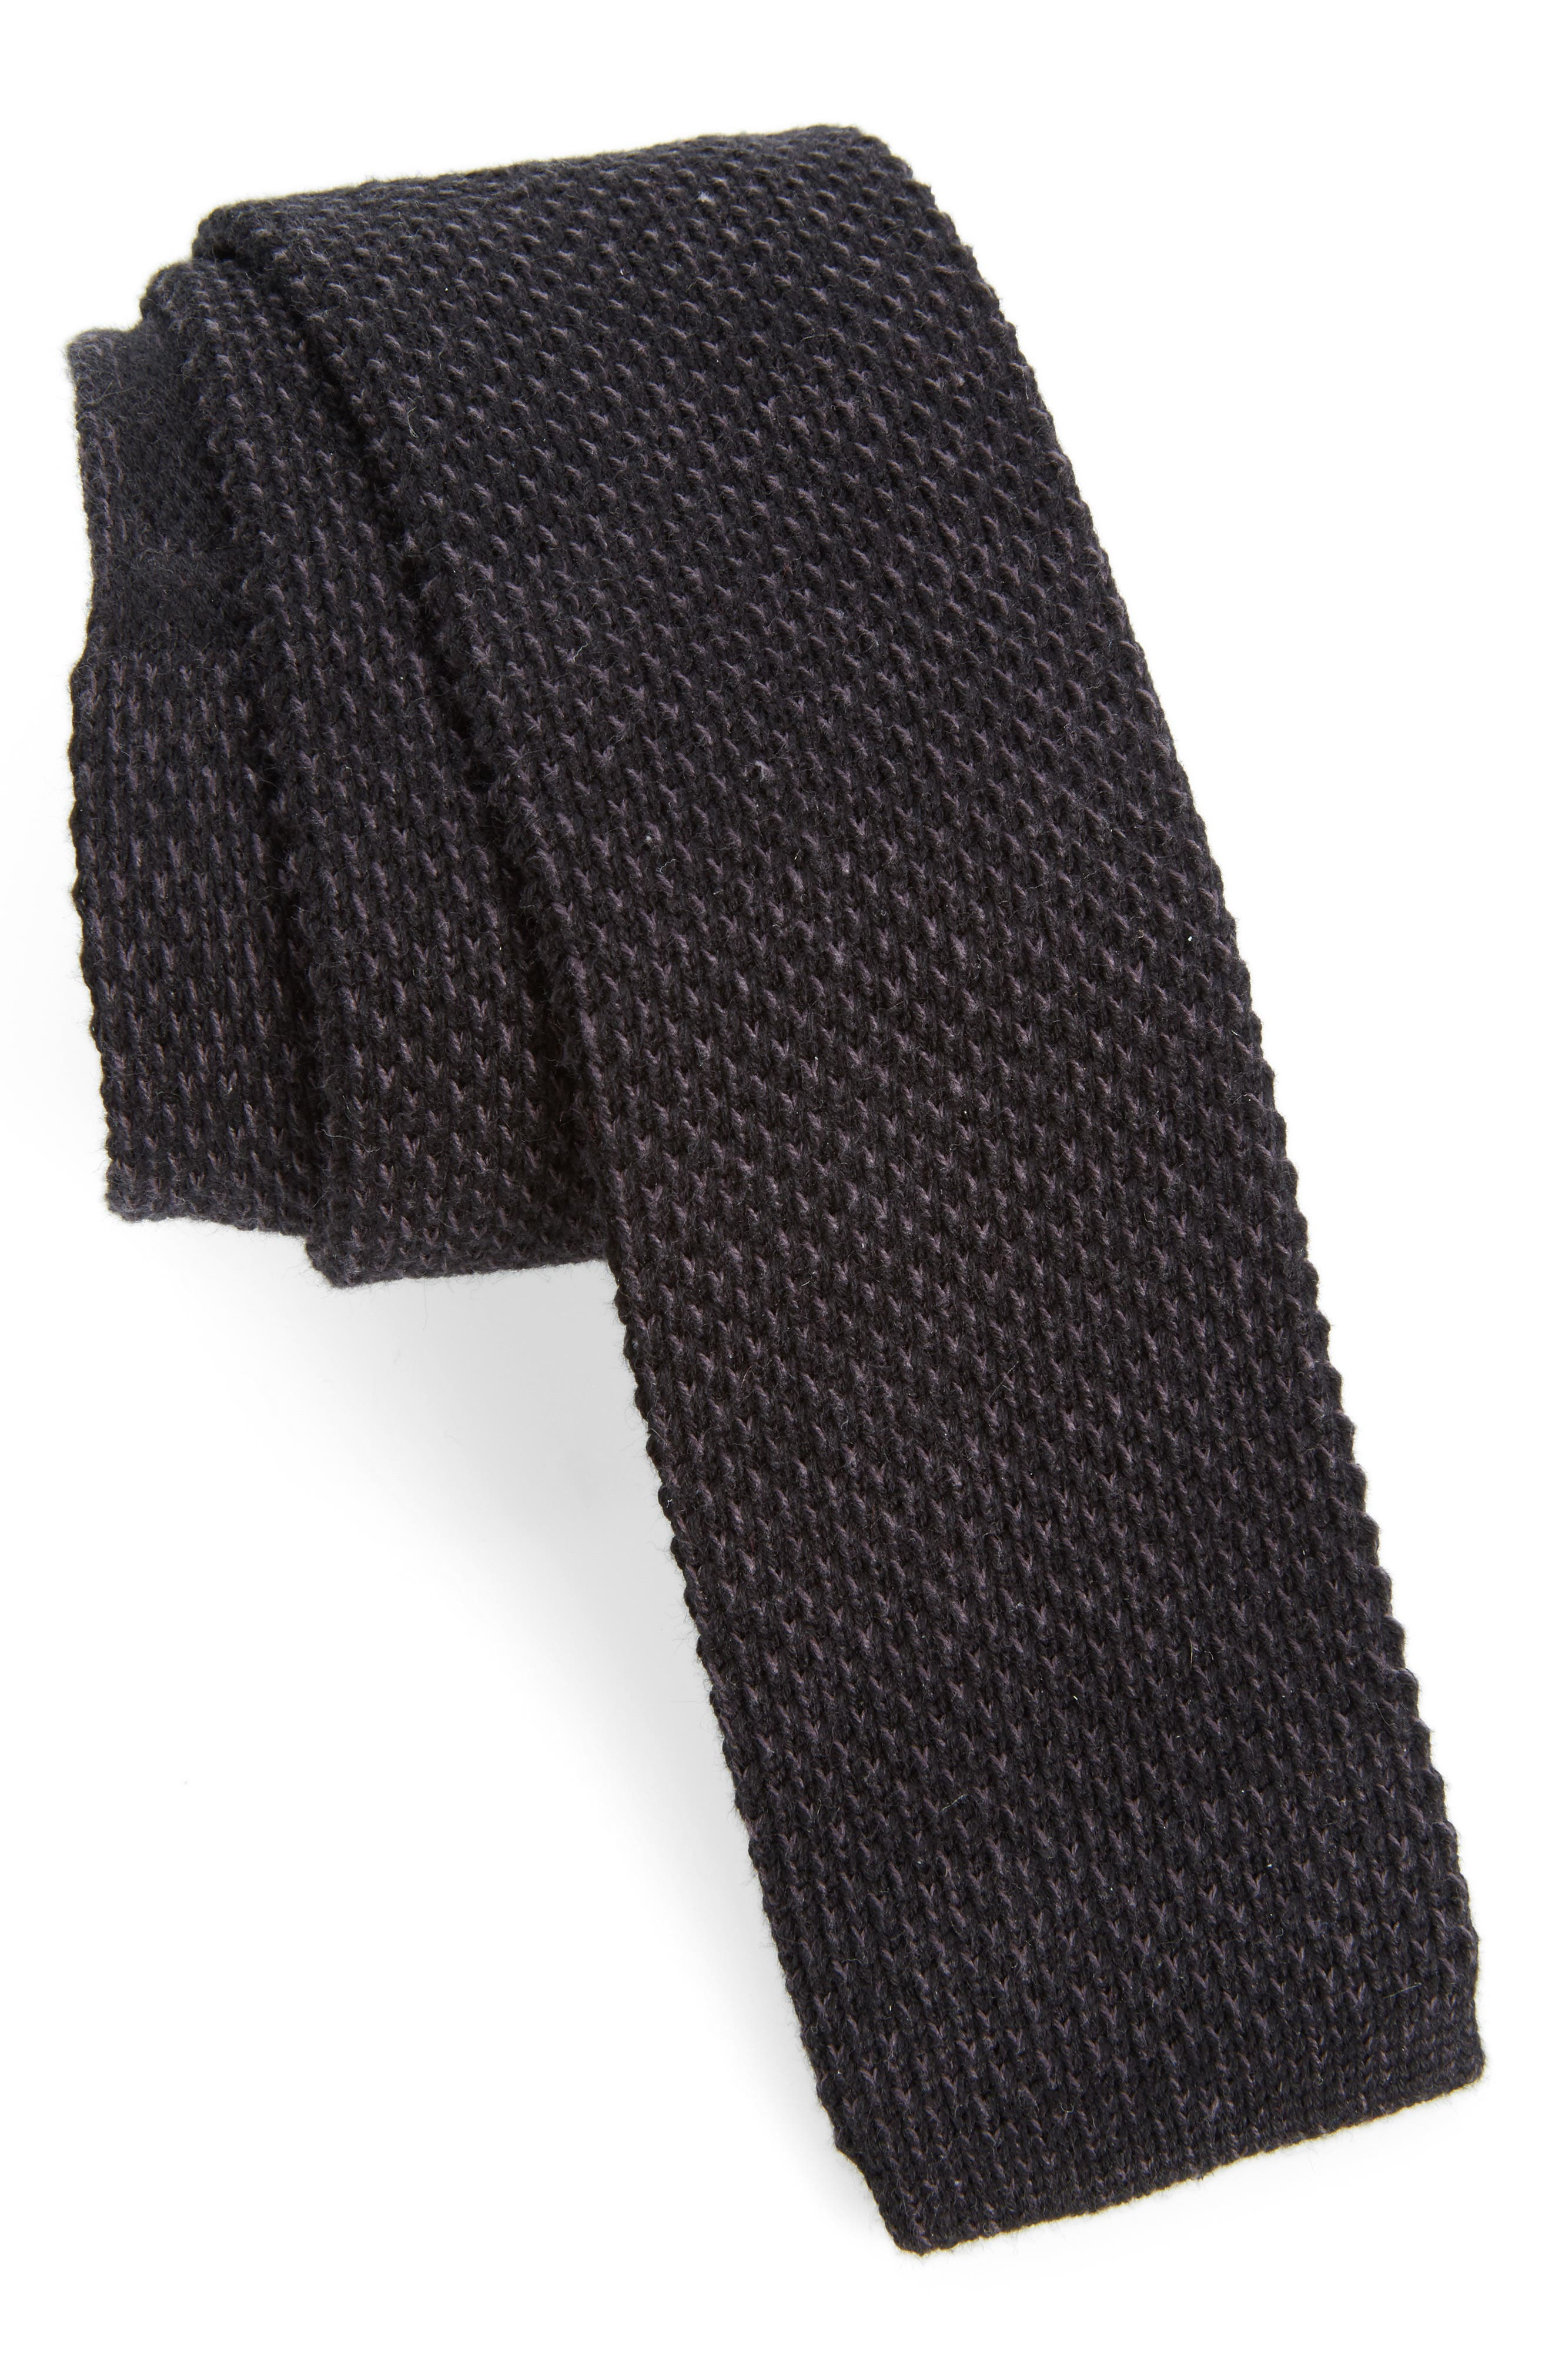 Edwardian Men's Fashion & Clothing Mens Nordstrom Mens Shop Skinny Knit Cotton Tie Size Regular - Black $25.00 AT vintagedancer.com